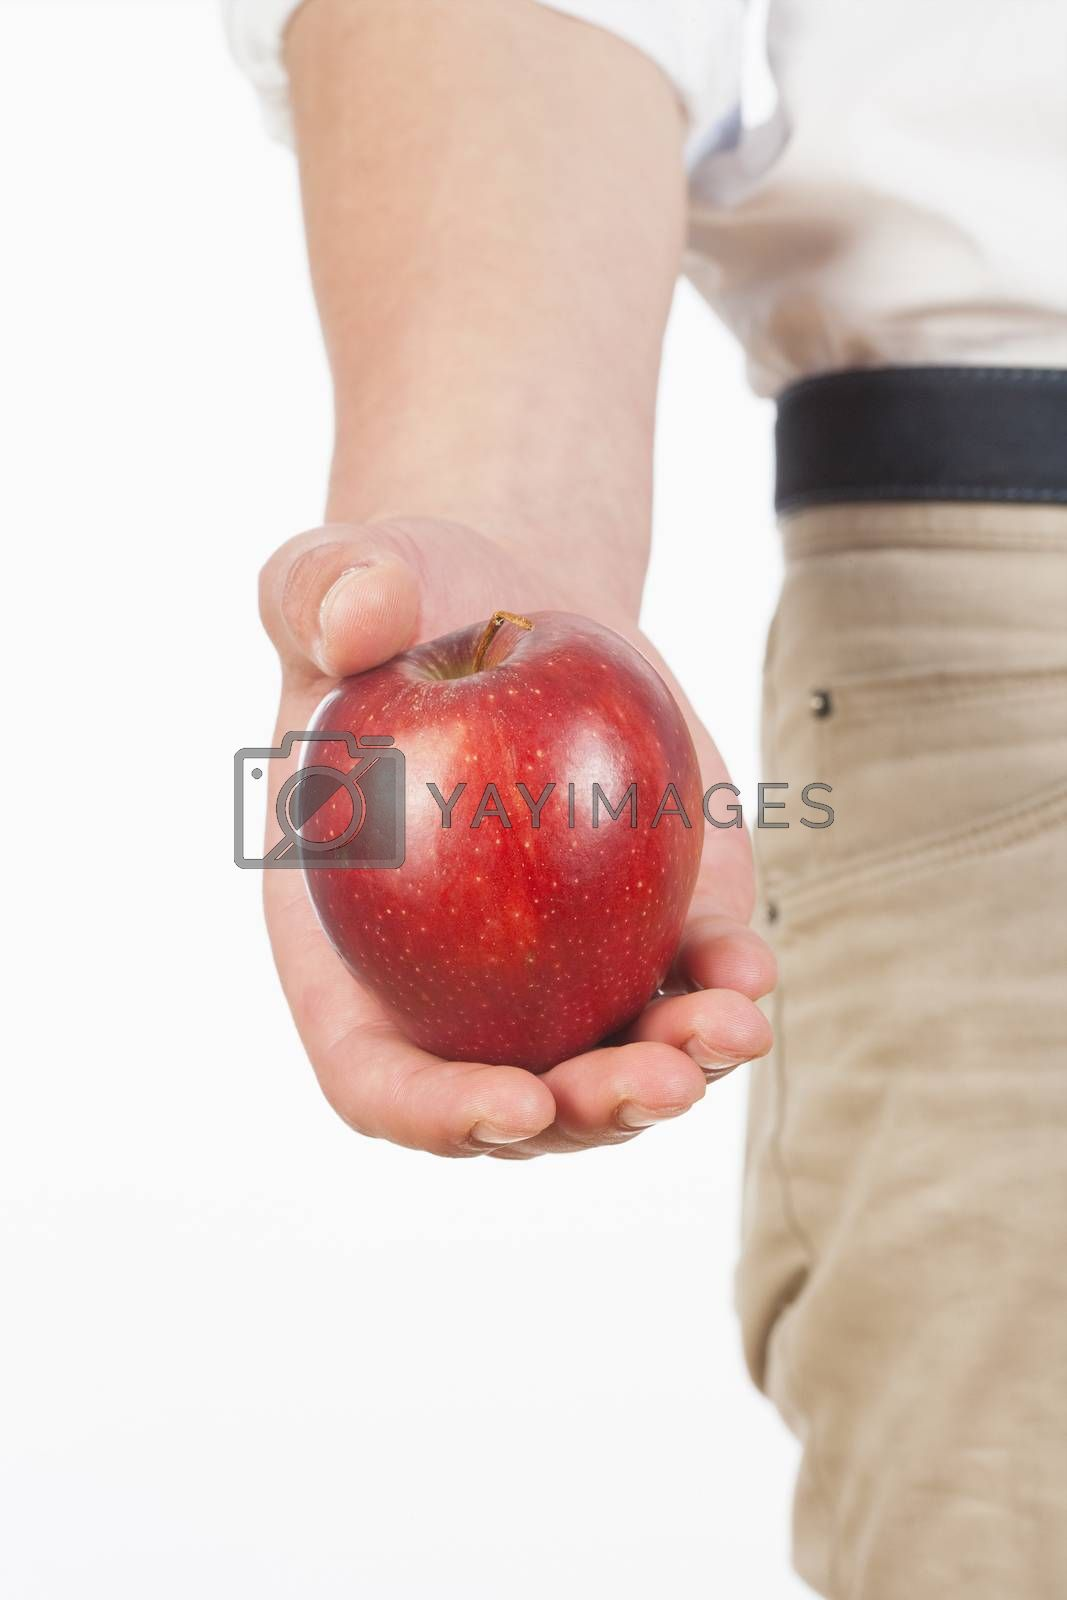 Royalty free image of Hand Holding Red Apple Against White Background by courtyardpix